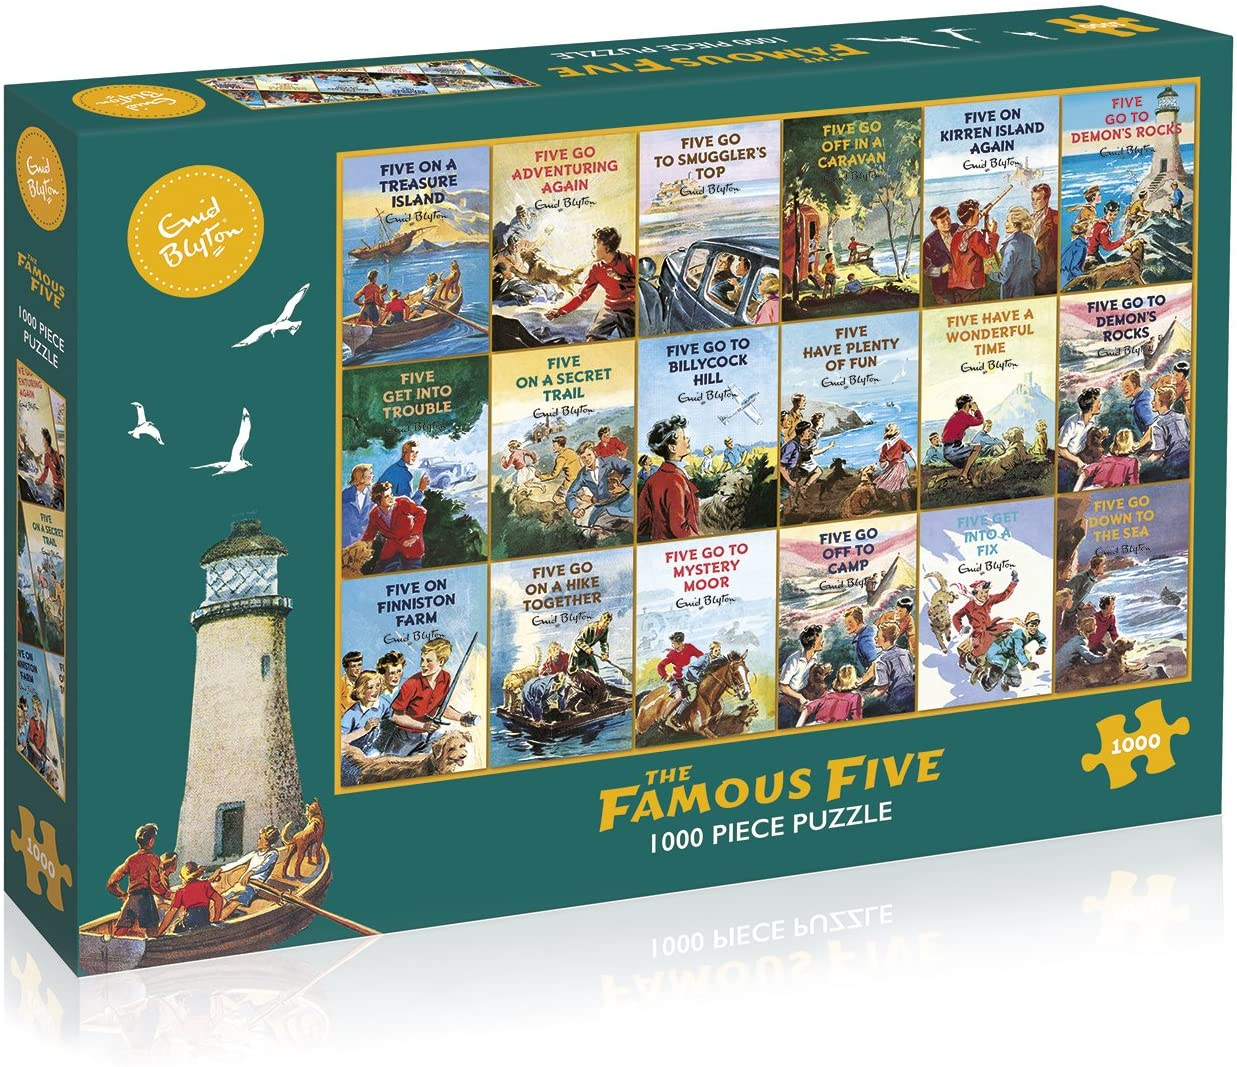 Box image of the Gibson's Jigsaw Puzzle 'Enid Blyton's Famous Five' featuring a selection of 18 book covers from the original series